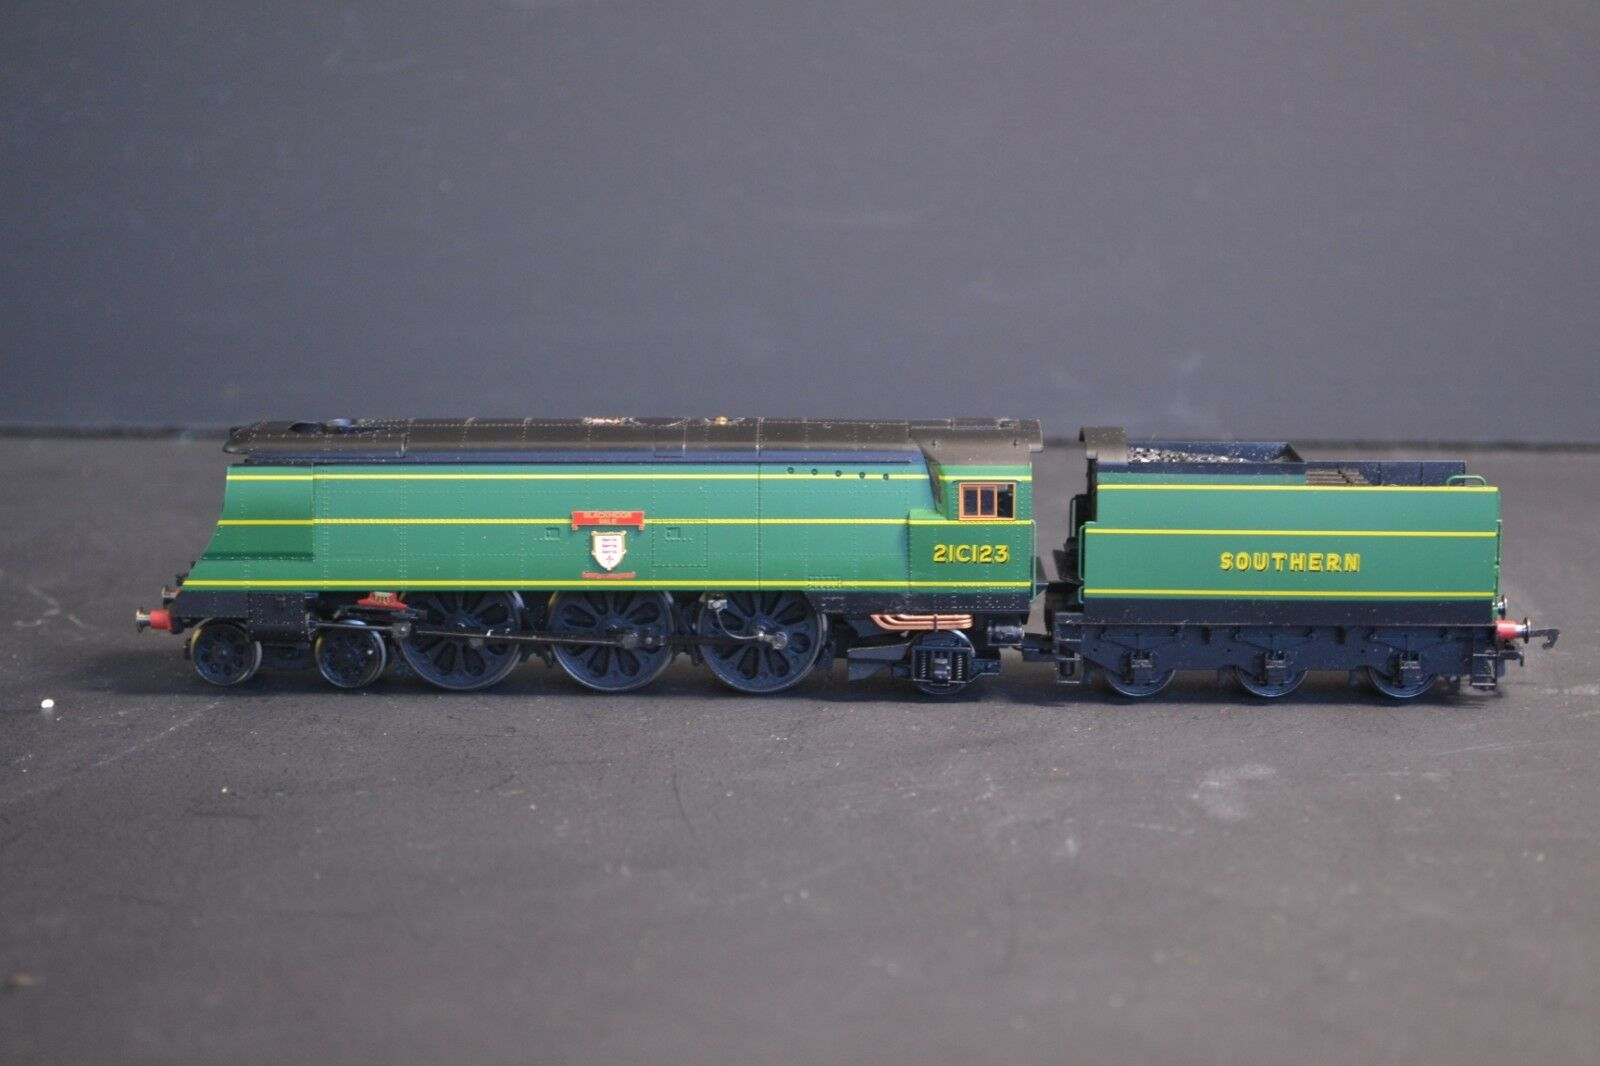 Hornby R2219 West Country Class negromoor Vale 21C123